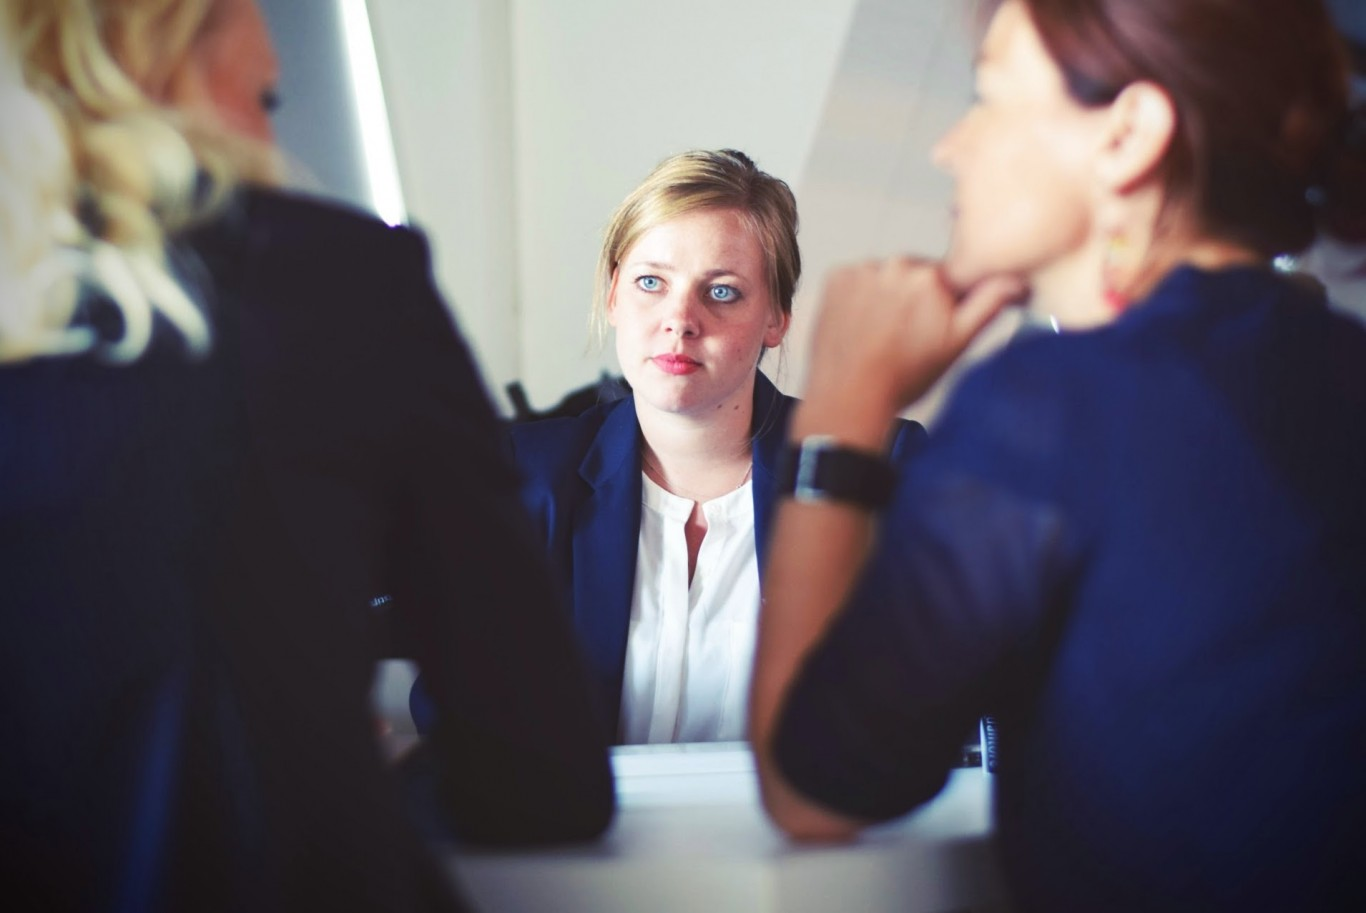 Why the Typical Performance Review Is Overwhelmingly Biased